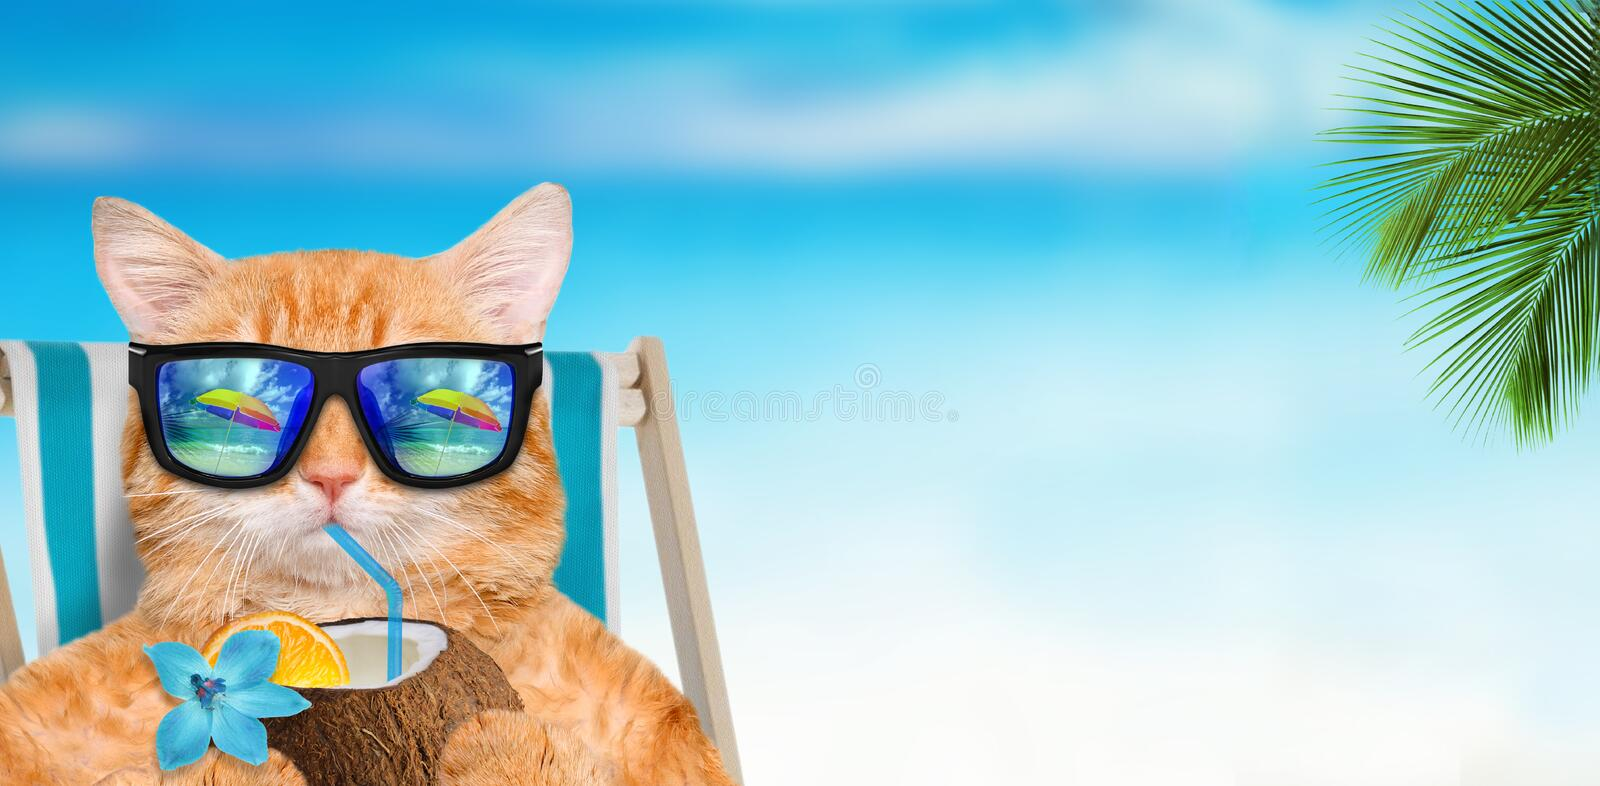 Cat wearing sunglasses relaxing sitting on deckchair. Cat wearing sunglasses relaxing sitting on deckchair in the sea background royalty free stock images